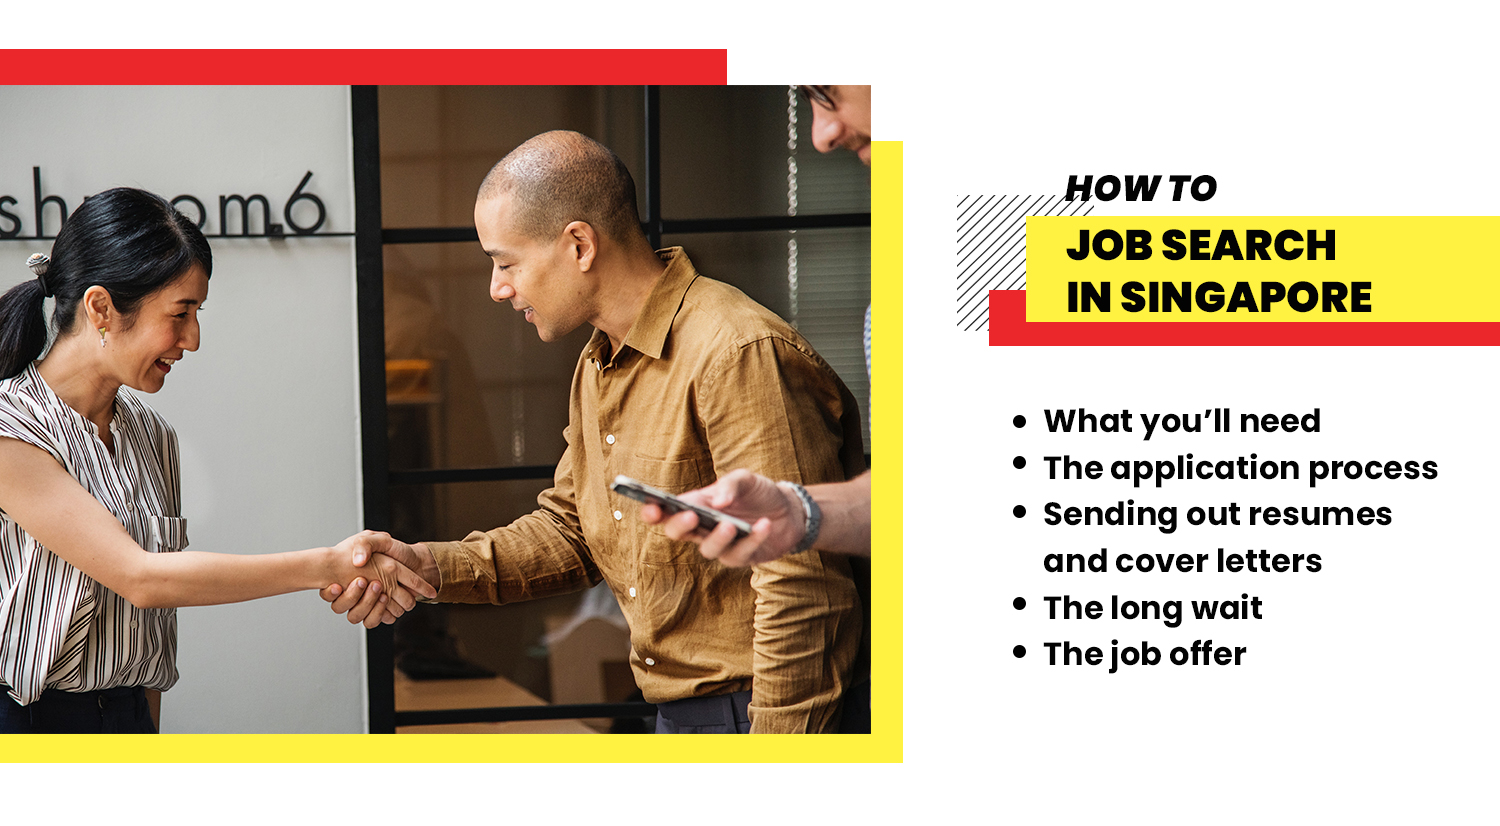 how to job search in Singapore